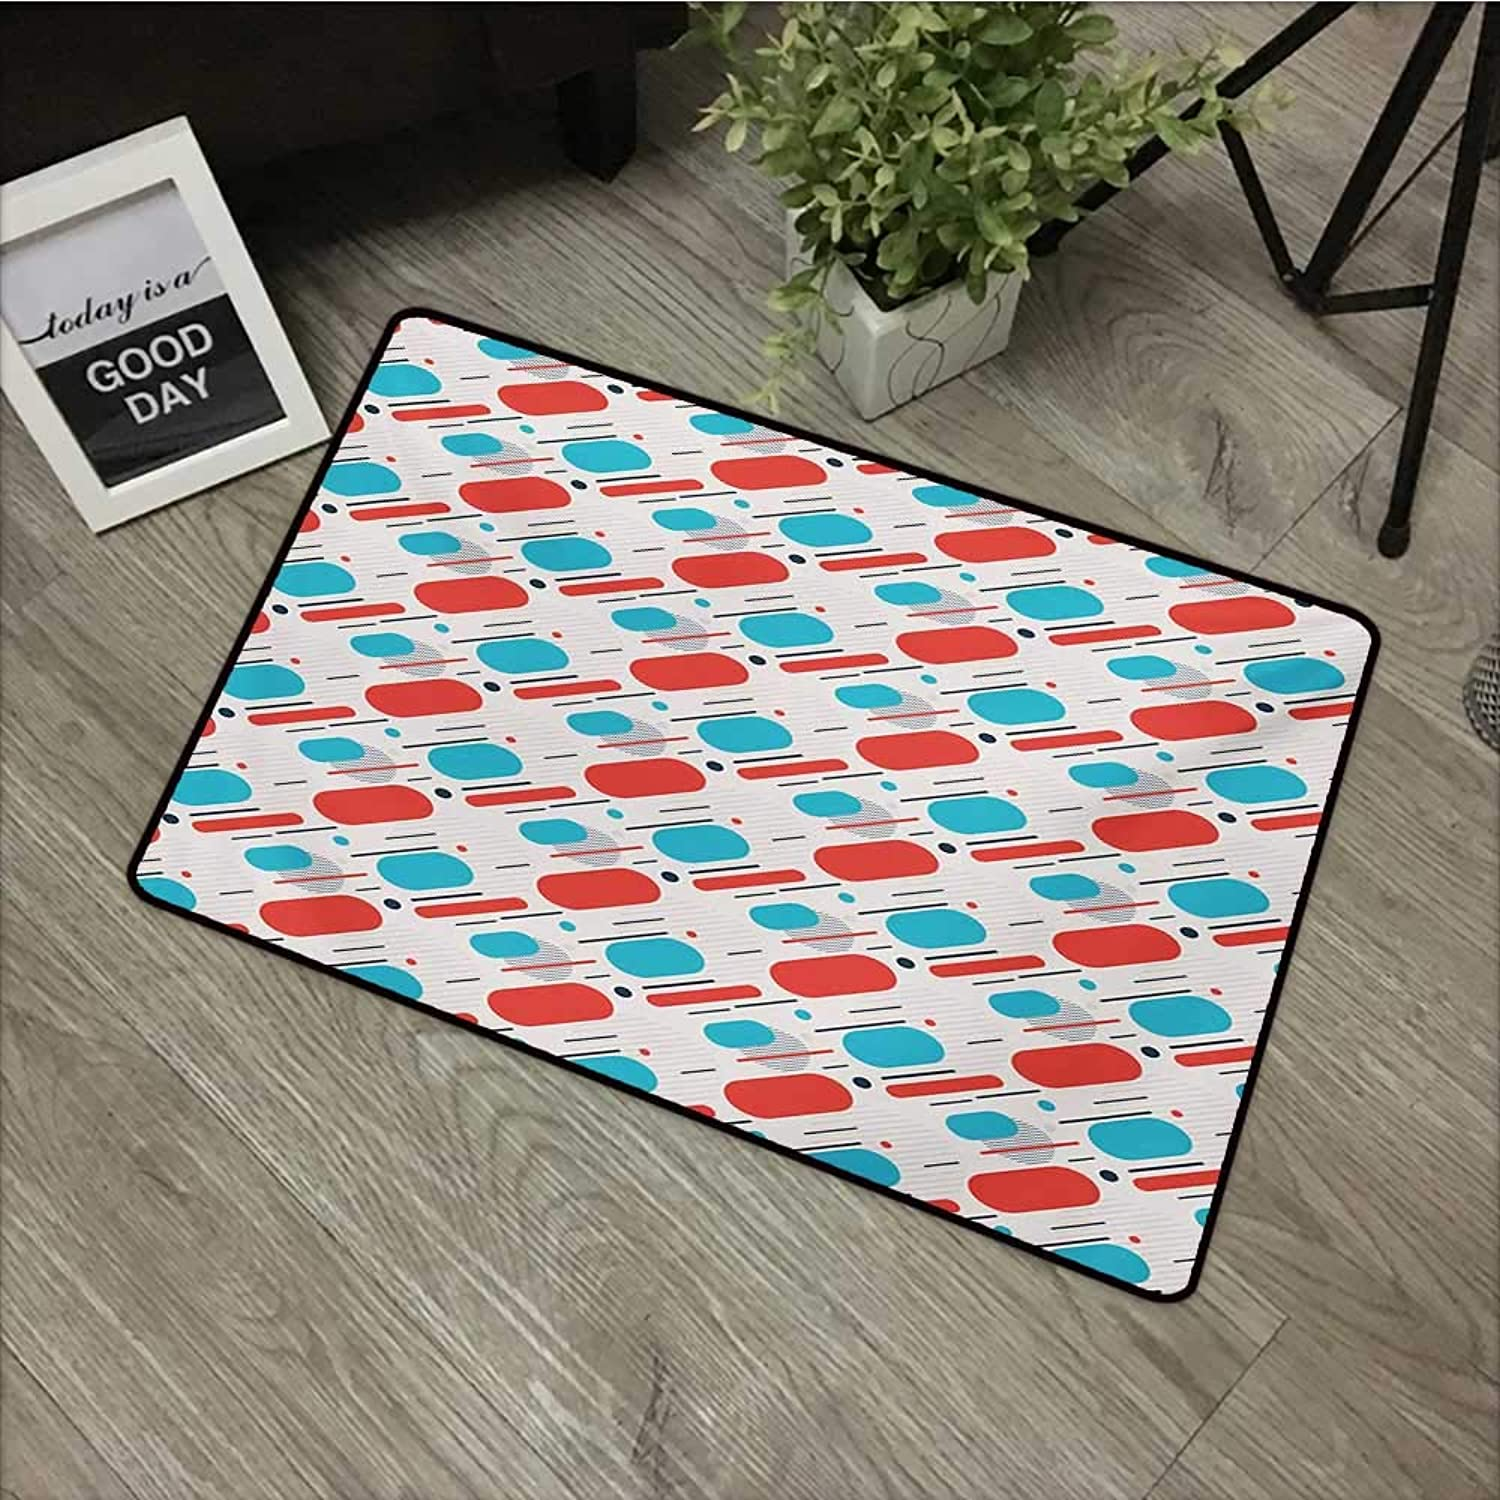 ef8035db6 Printed Door mat W35 x L47 INCH Geometric,Abstract Line and Stripes  Abstract Minimalism Design